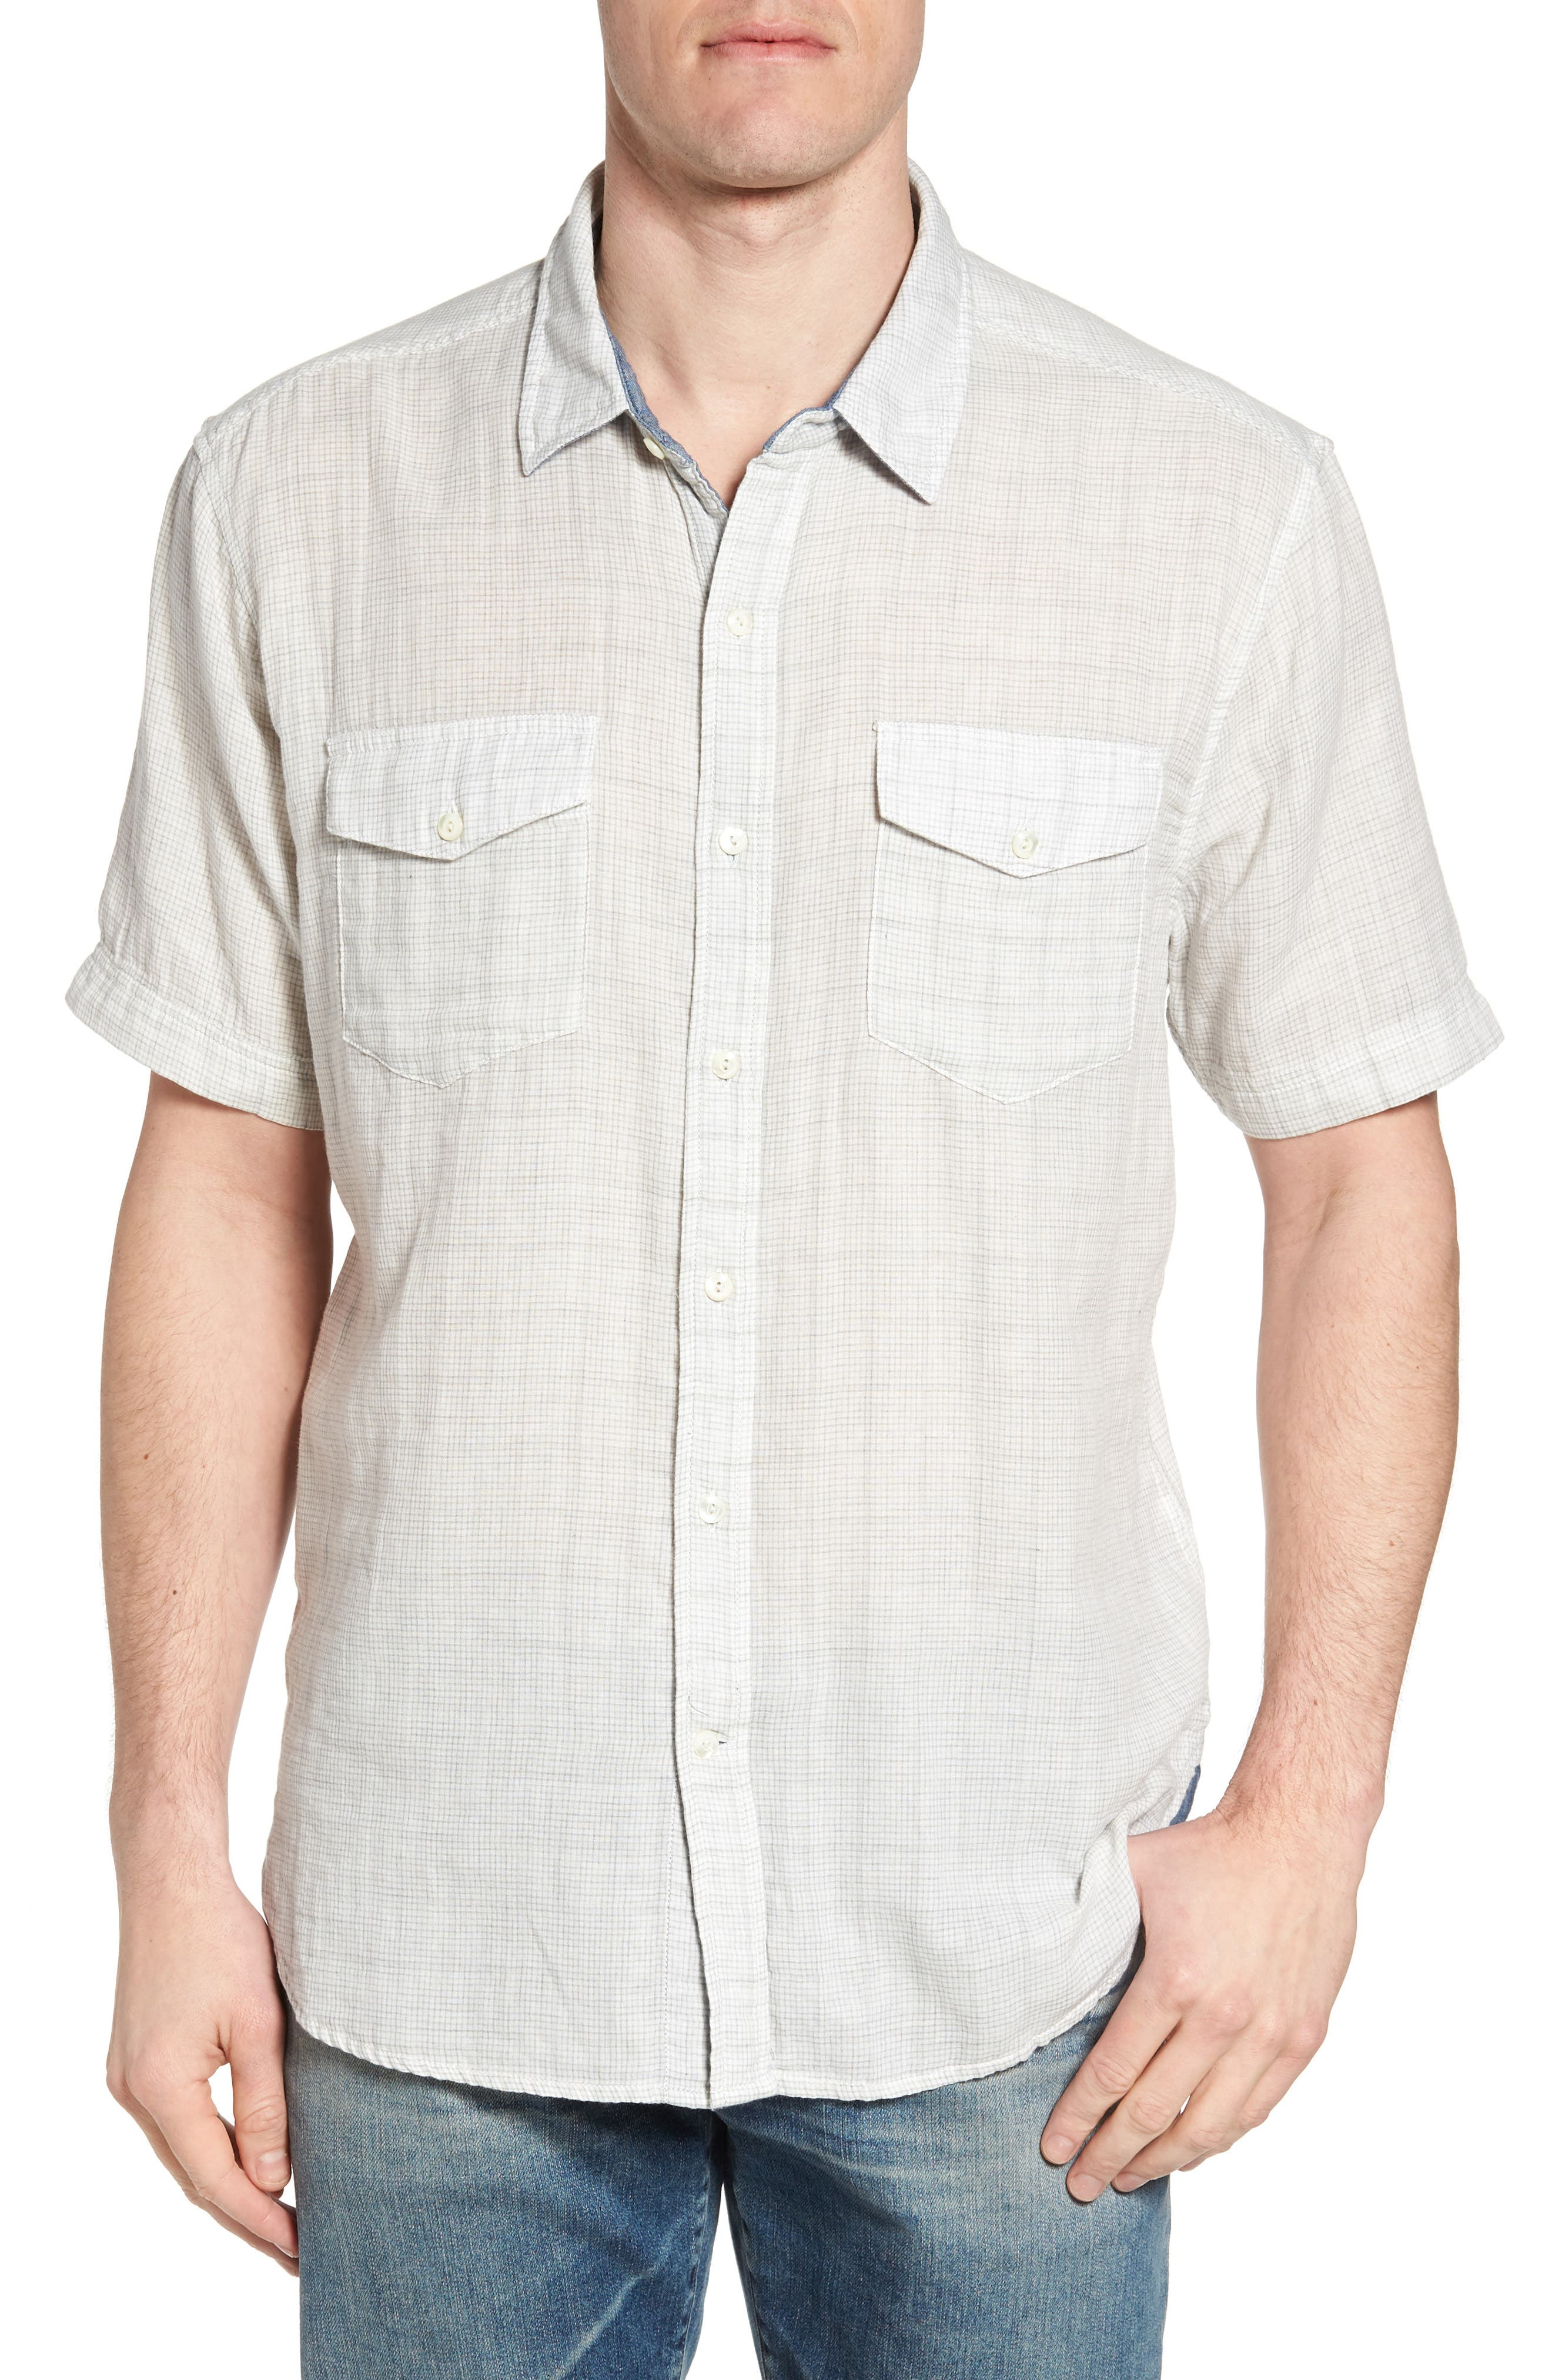 Crossroads Check Sport Shirt,                         Main,                         color, 020